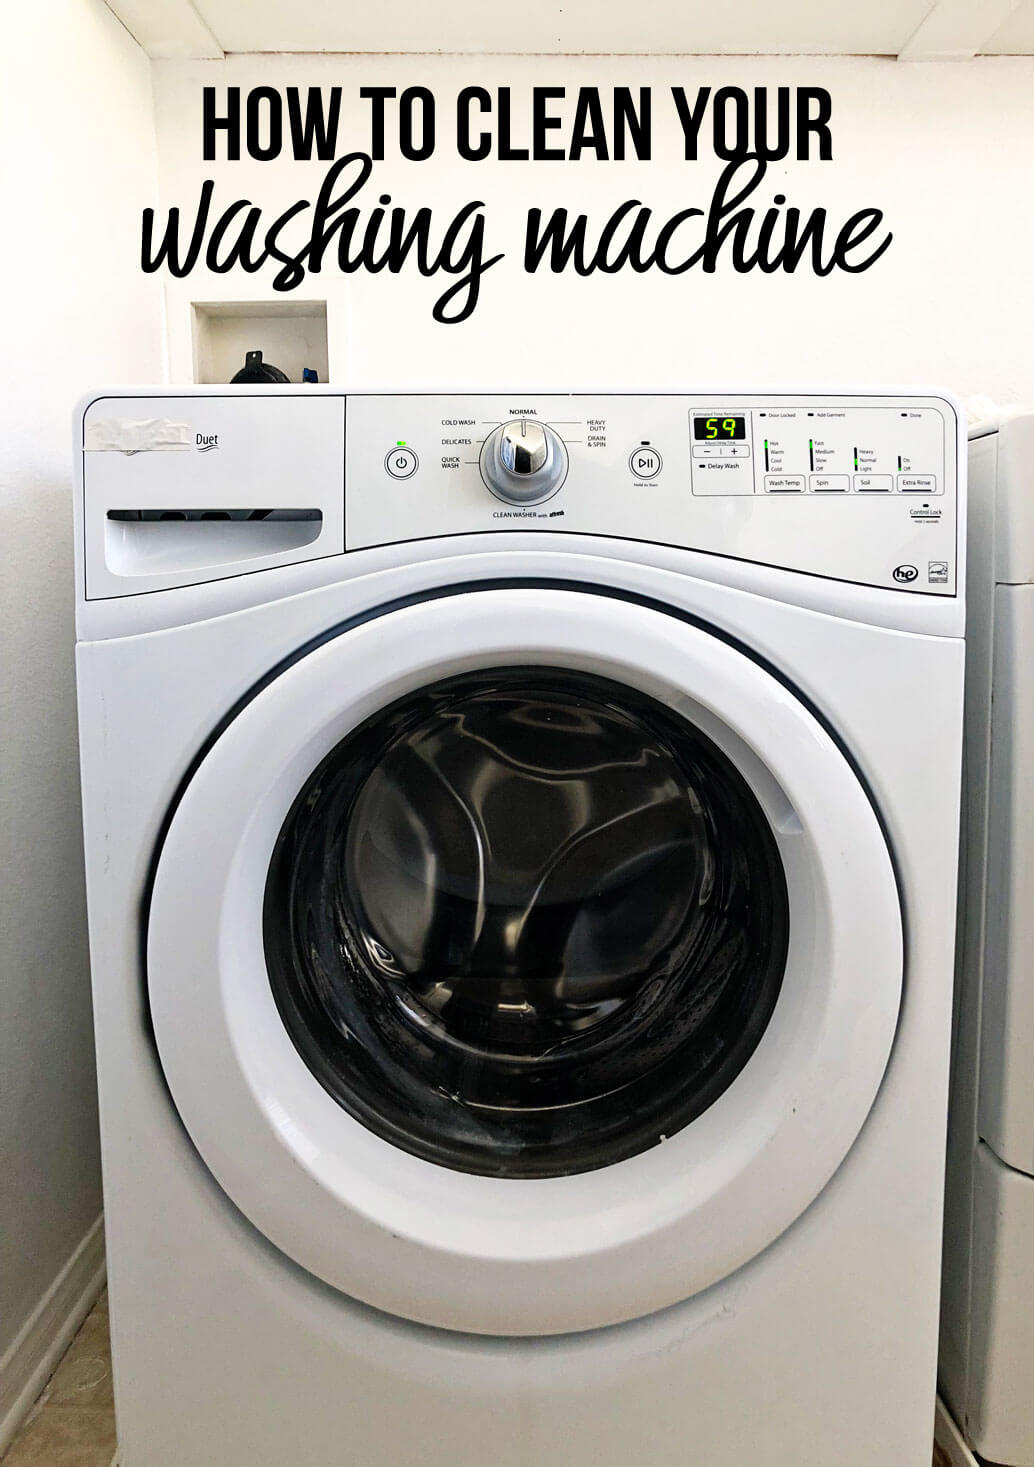 How to Clean Your Washing Machine - learn the simple way to make your washing machine work more efficiently!